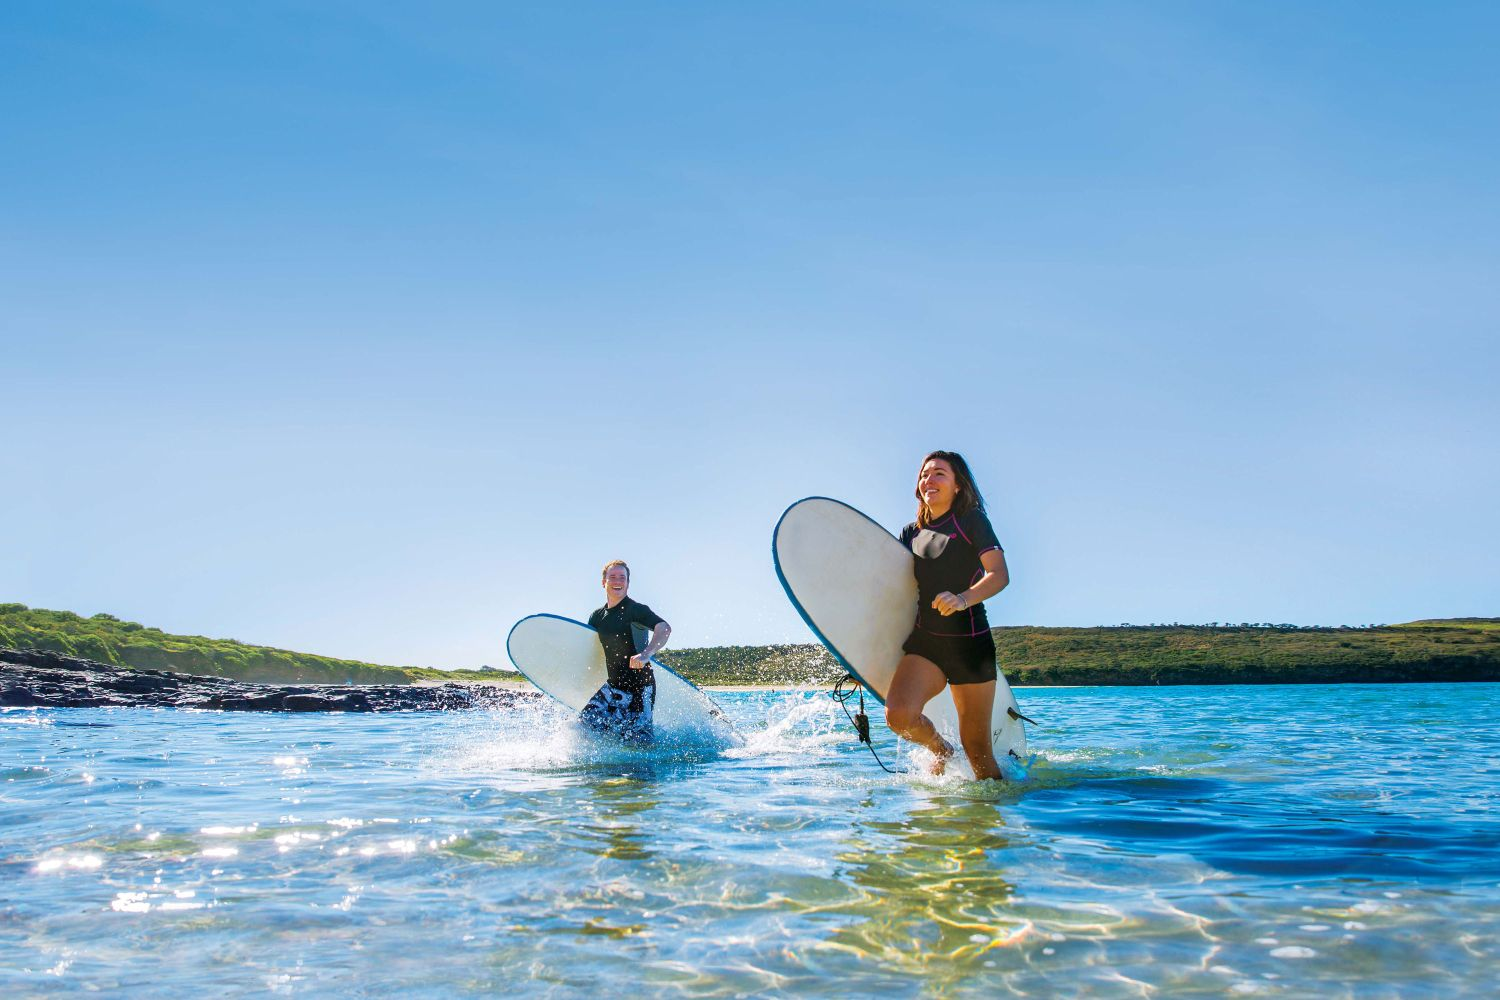 Shellharbour - Surfing at The Farm, Killalea State Park